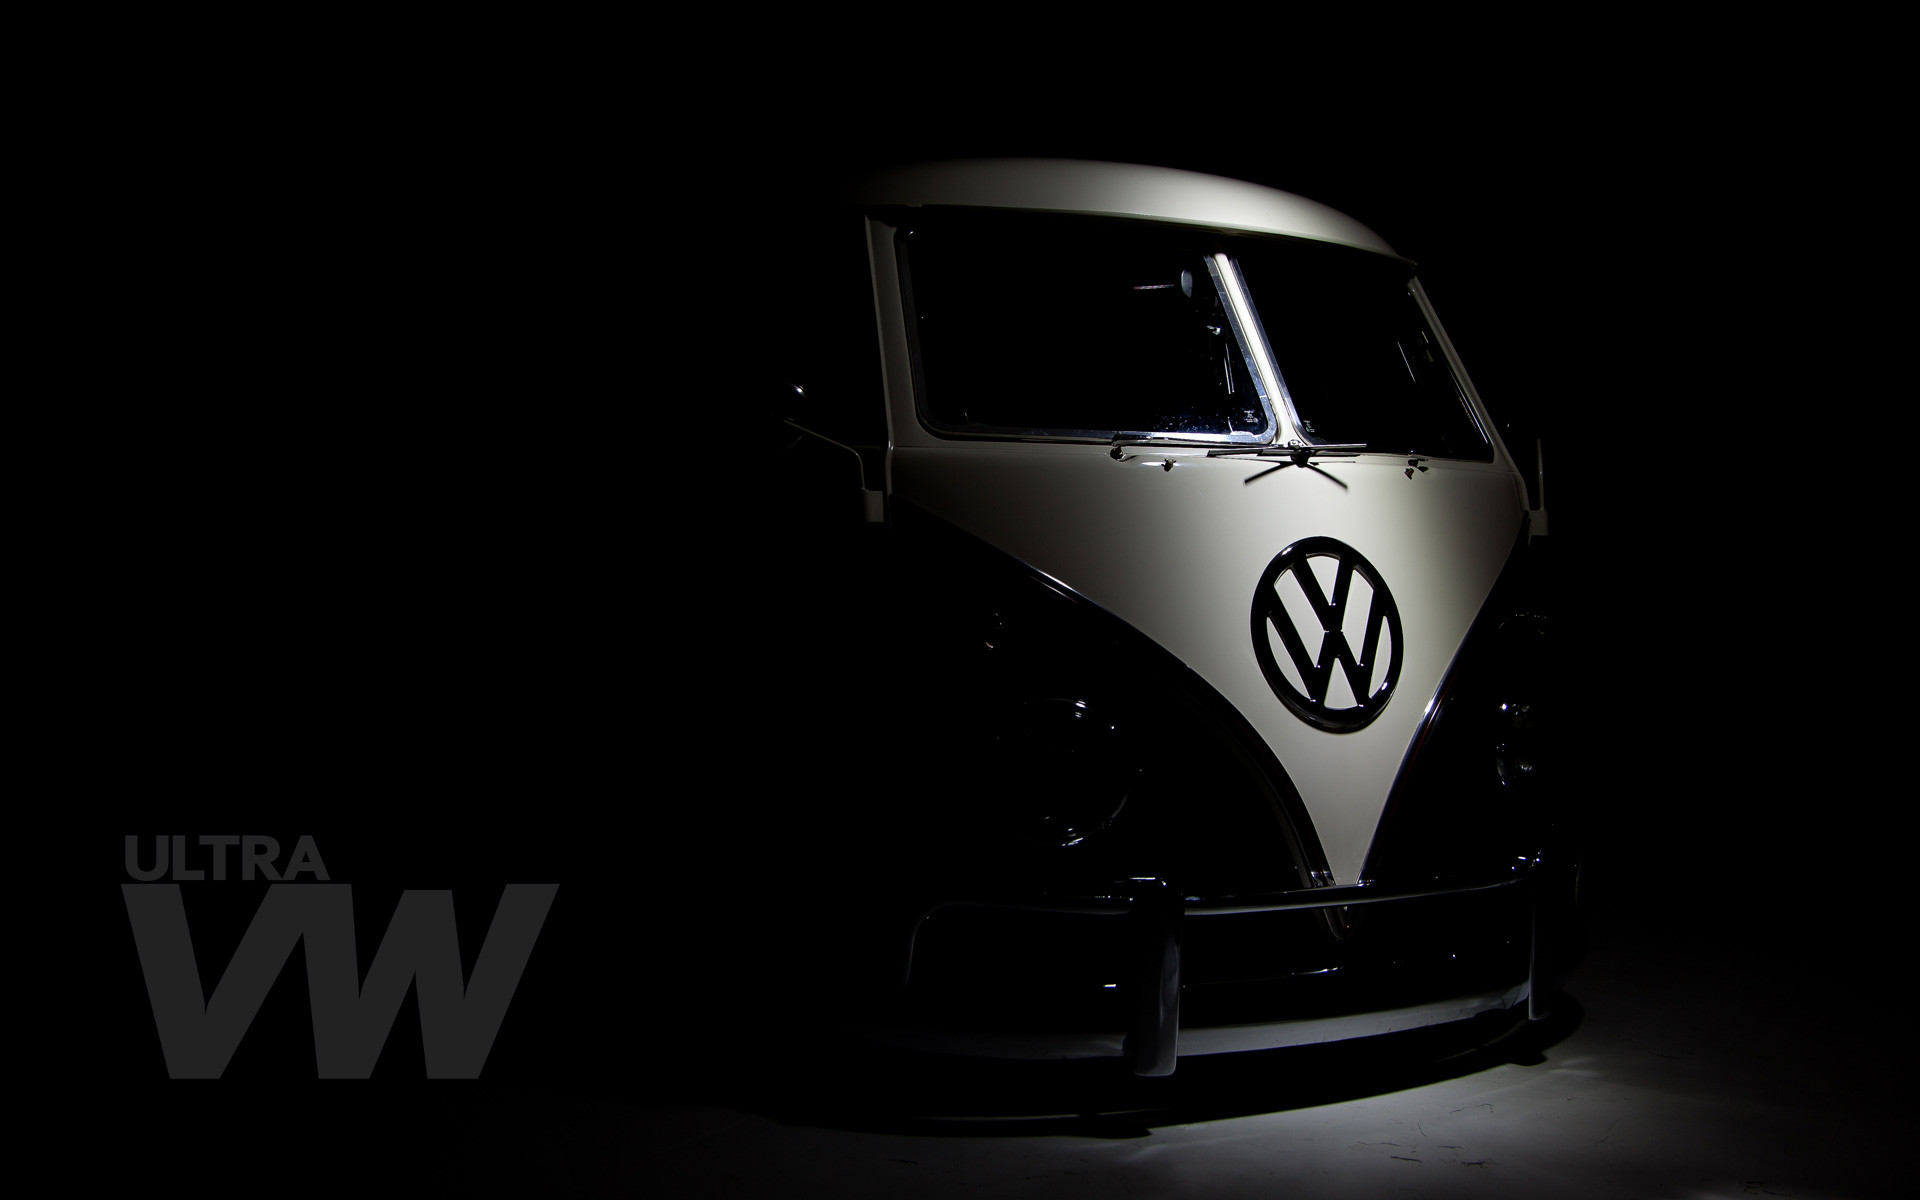 vw logo wallpapers  images